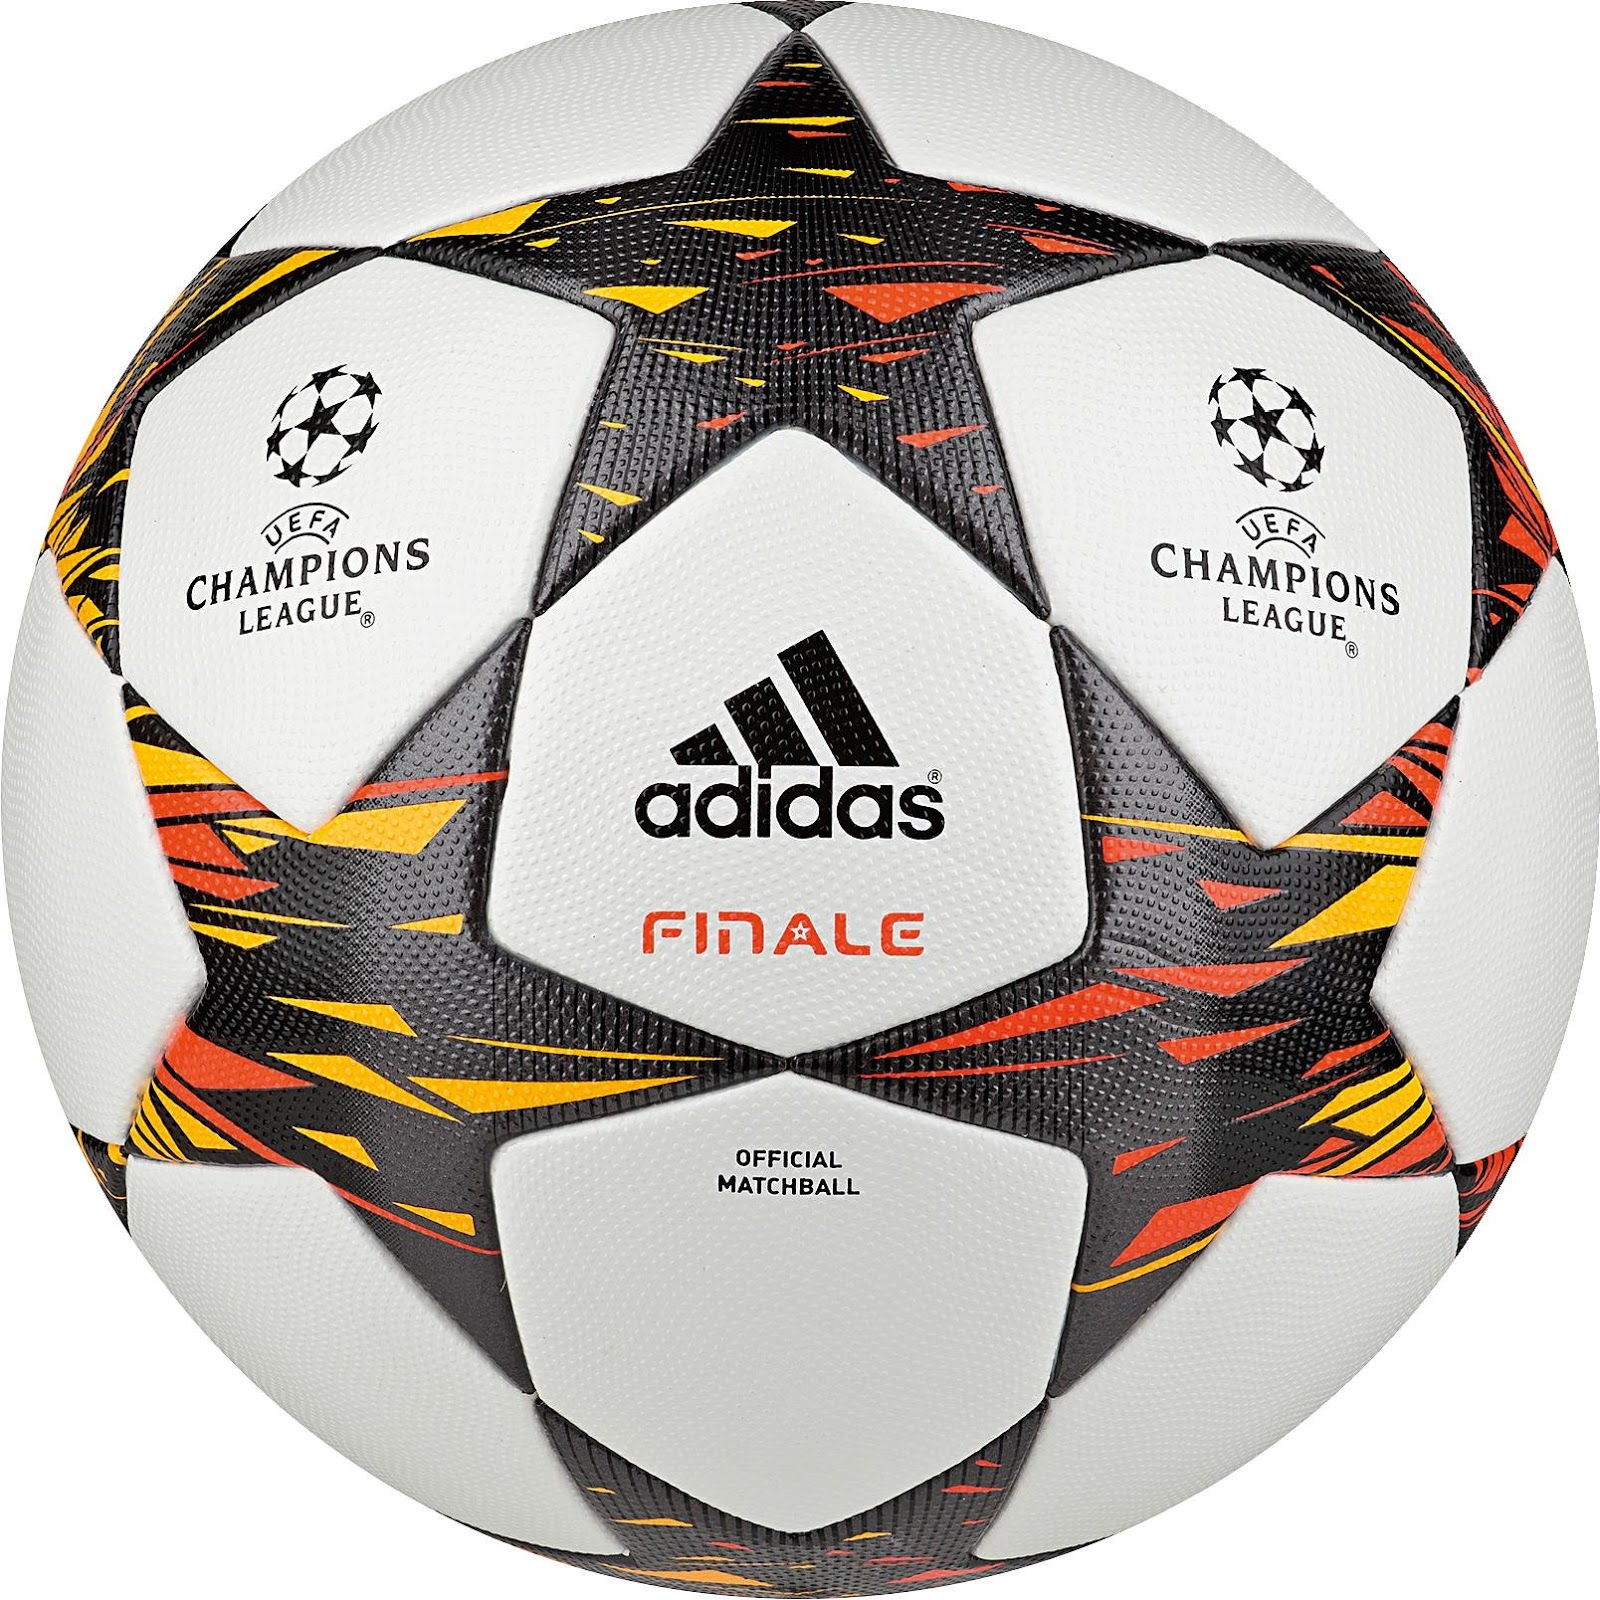 champions league foot ball